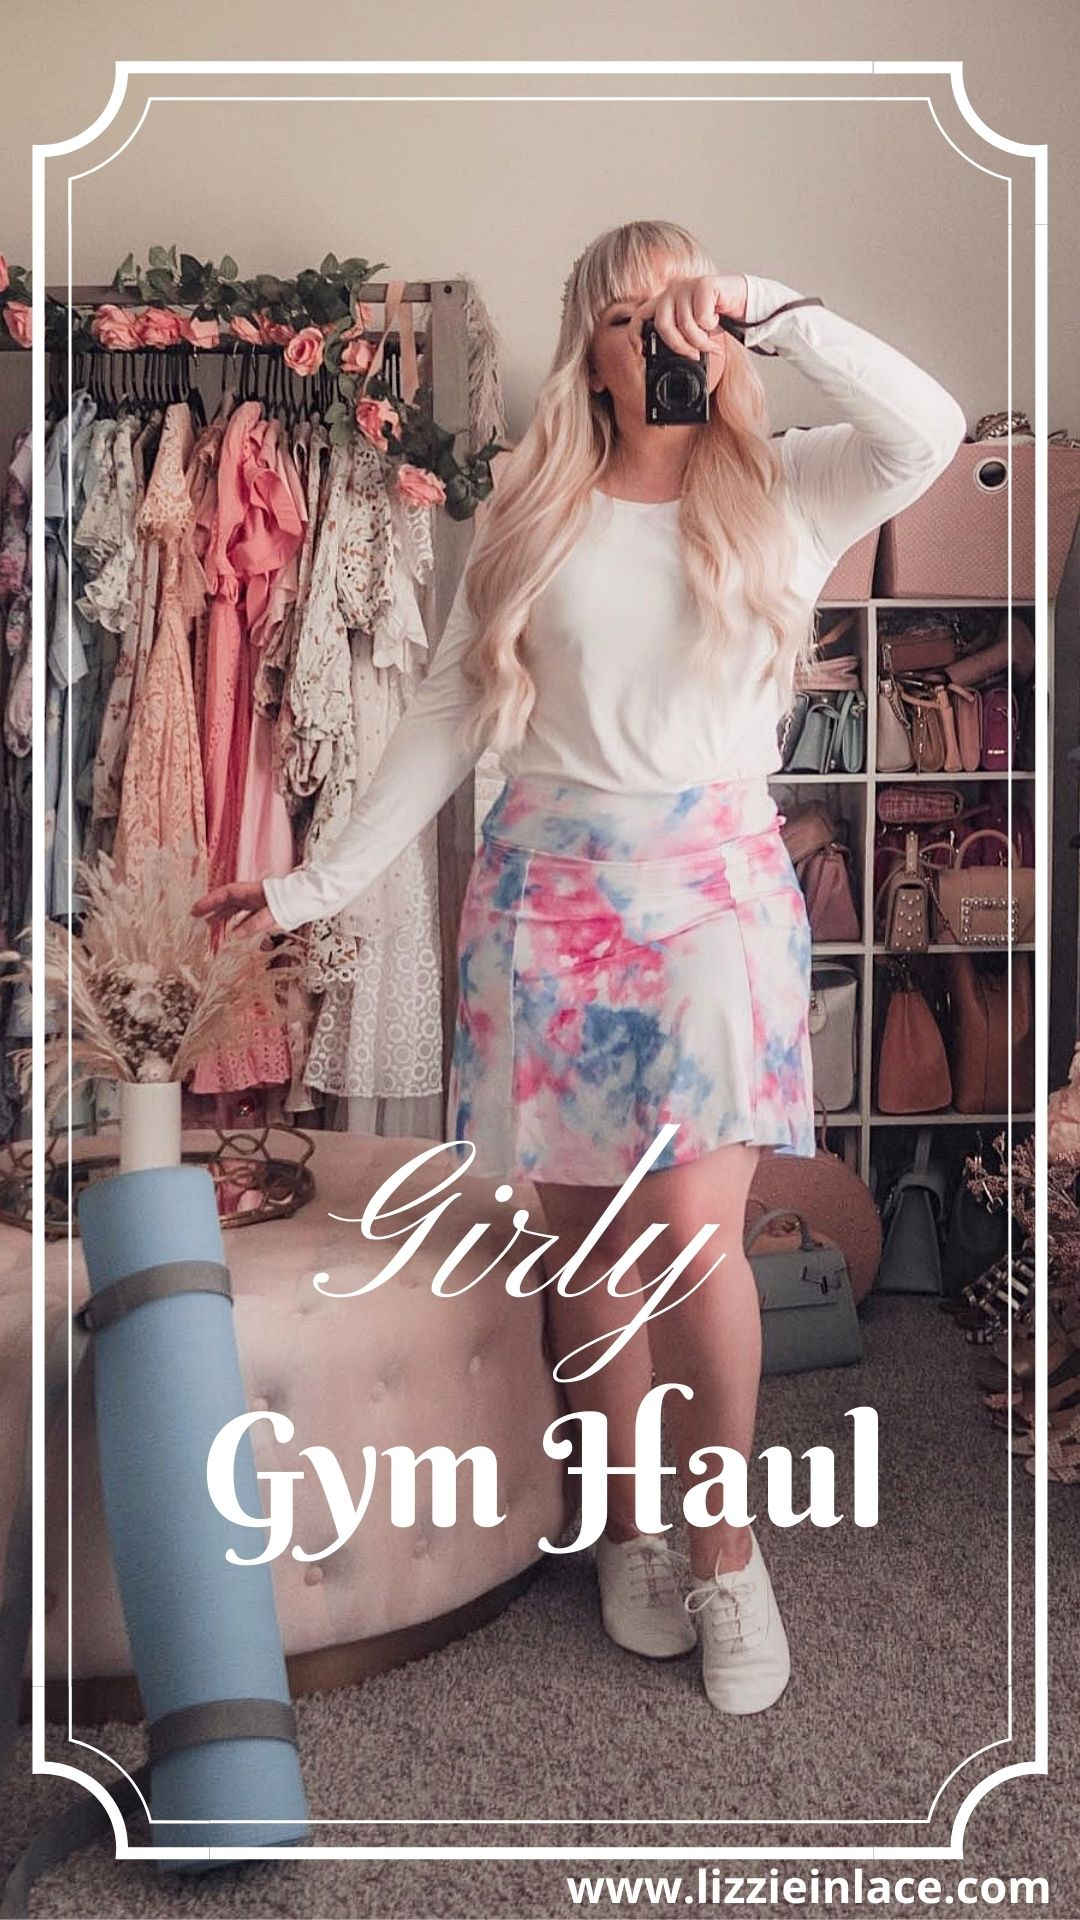 Feminine Fashion Blogger Elizabeth Hugen of Lizzie in Lace shares Where to Buy Cute Workout Clothes